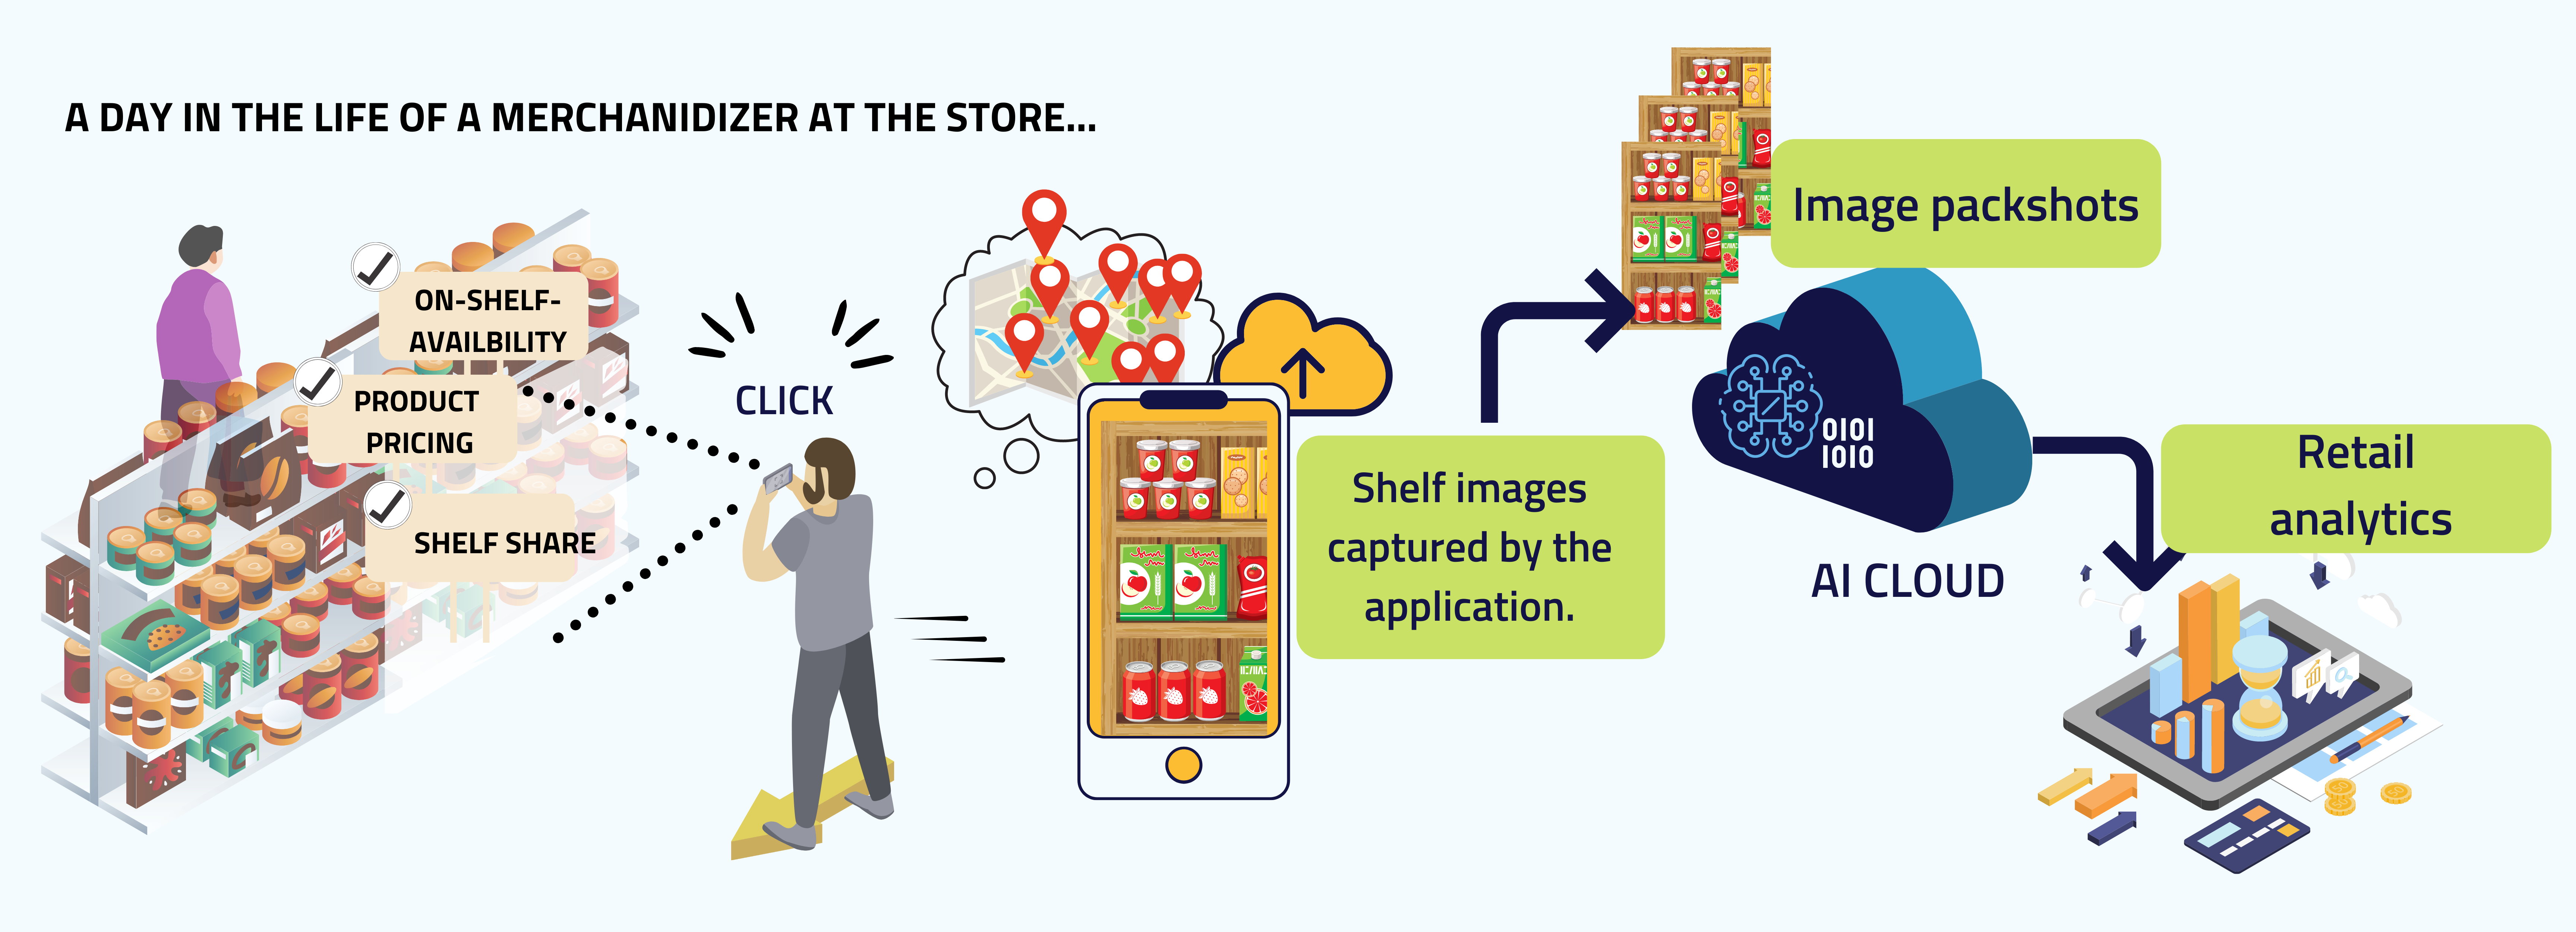 image recognition and AI for retail execution